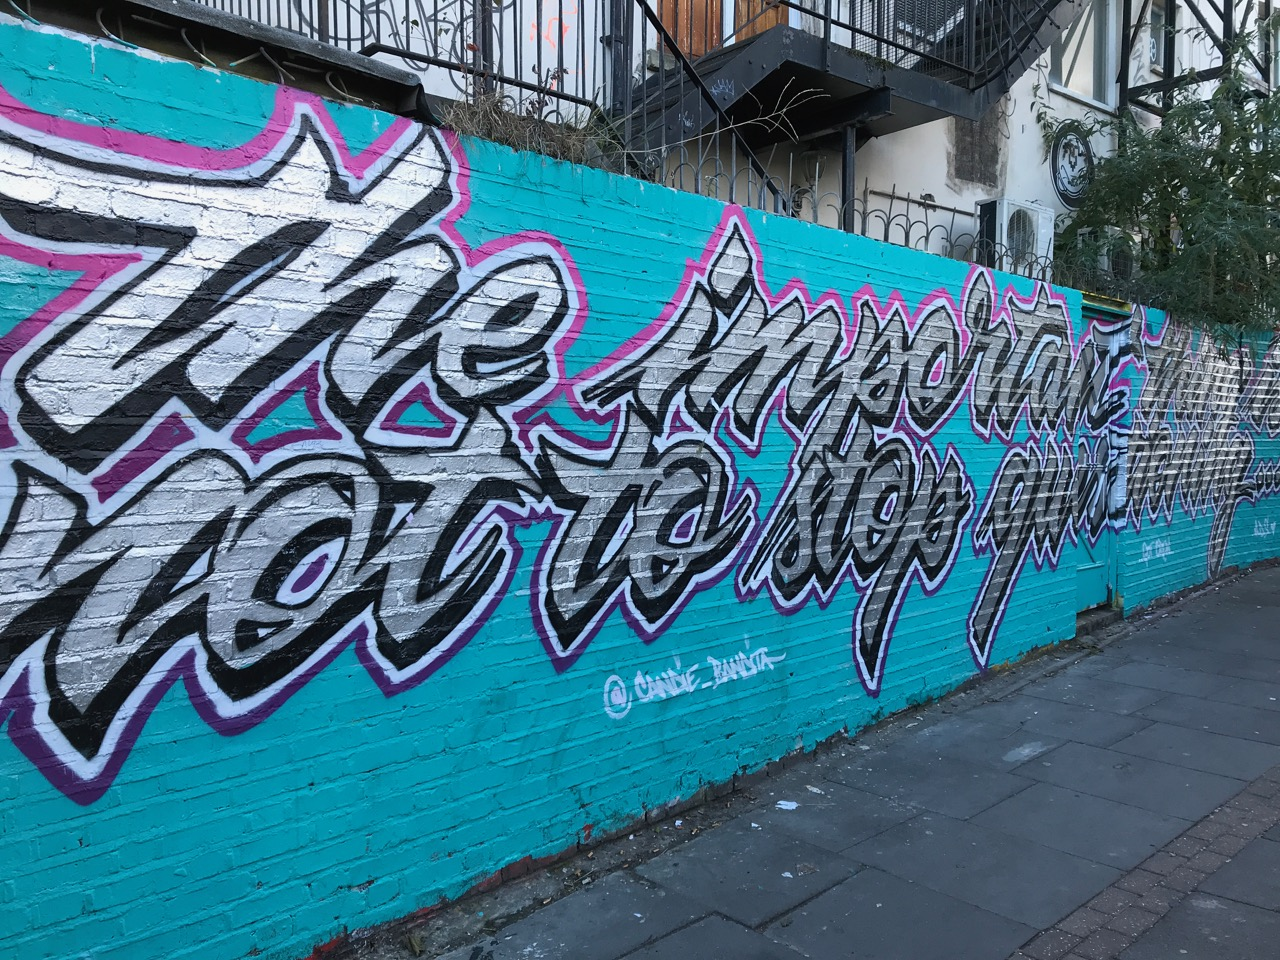 the important thing is to not stop questioning einstein candie bandita brick lane london street art.jpg